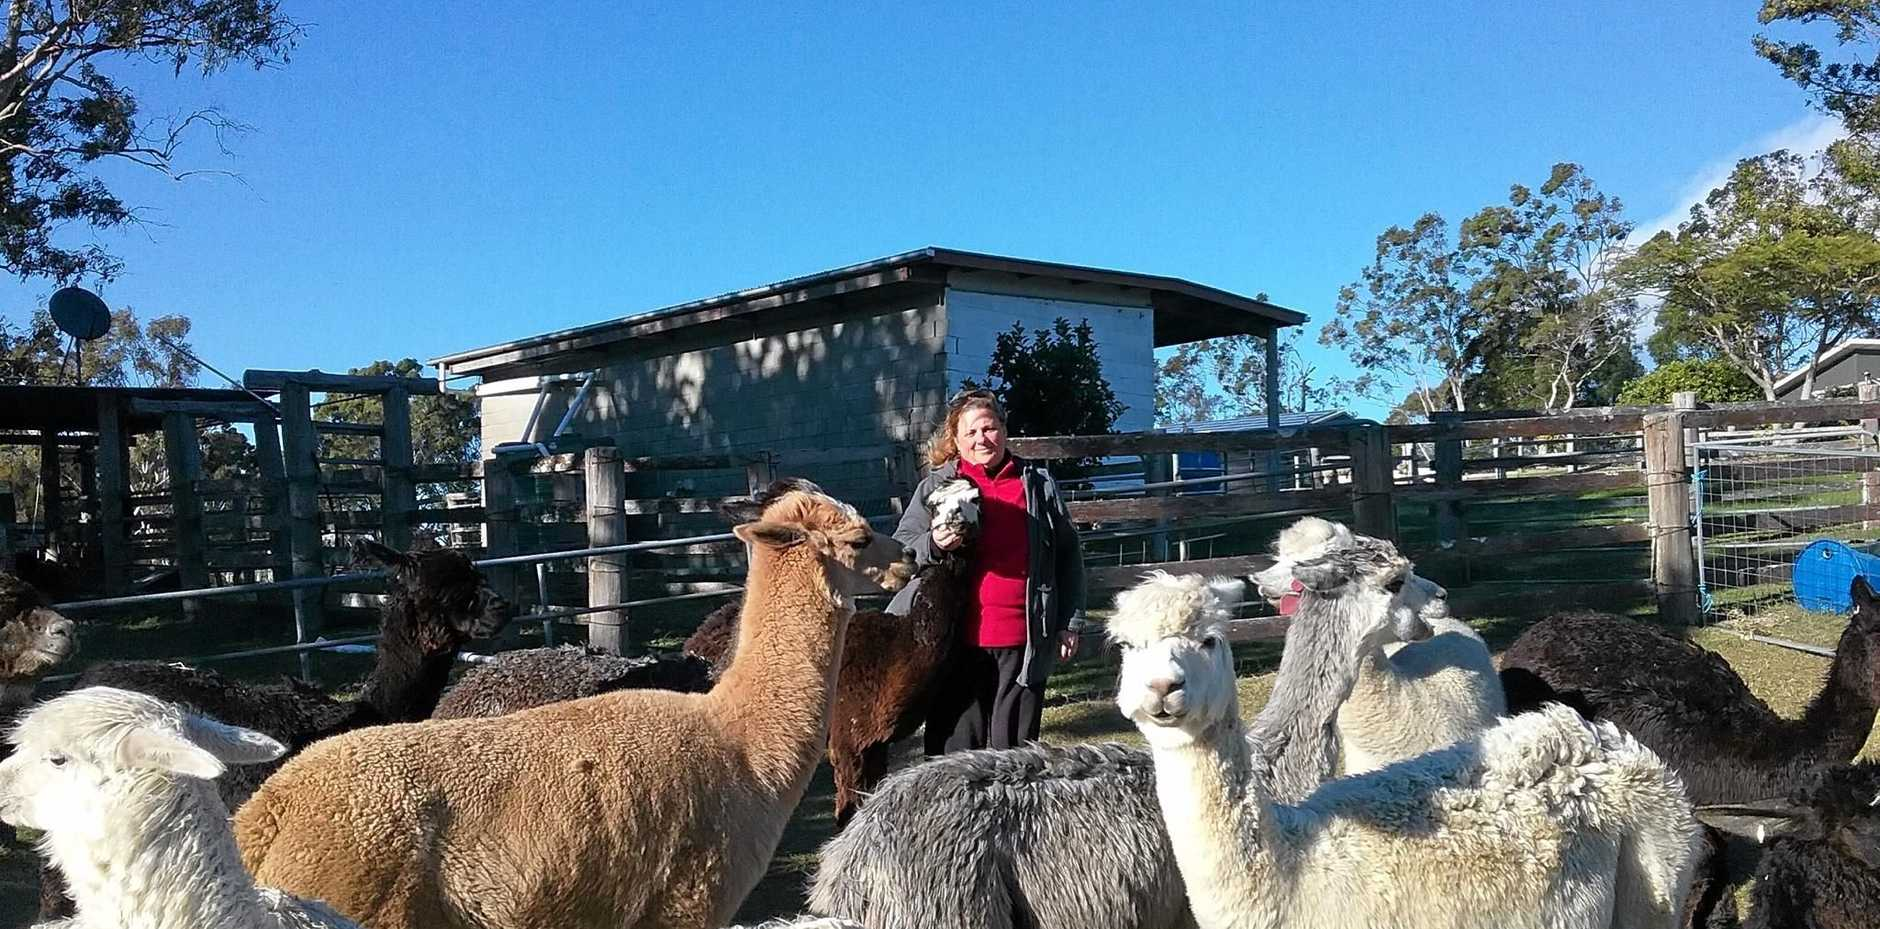 ON THE FARM: Judy Durkin mingles with her alpacas at home on her Moonshine Stud at Ocean View on the Sunshine Coast.